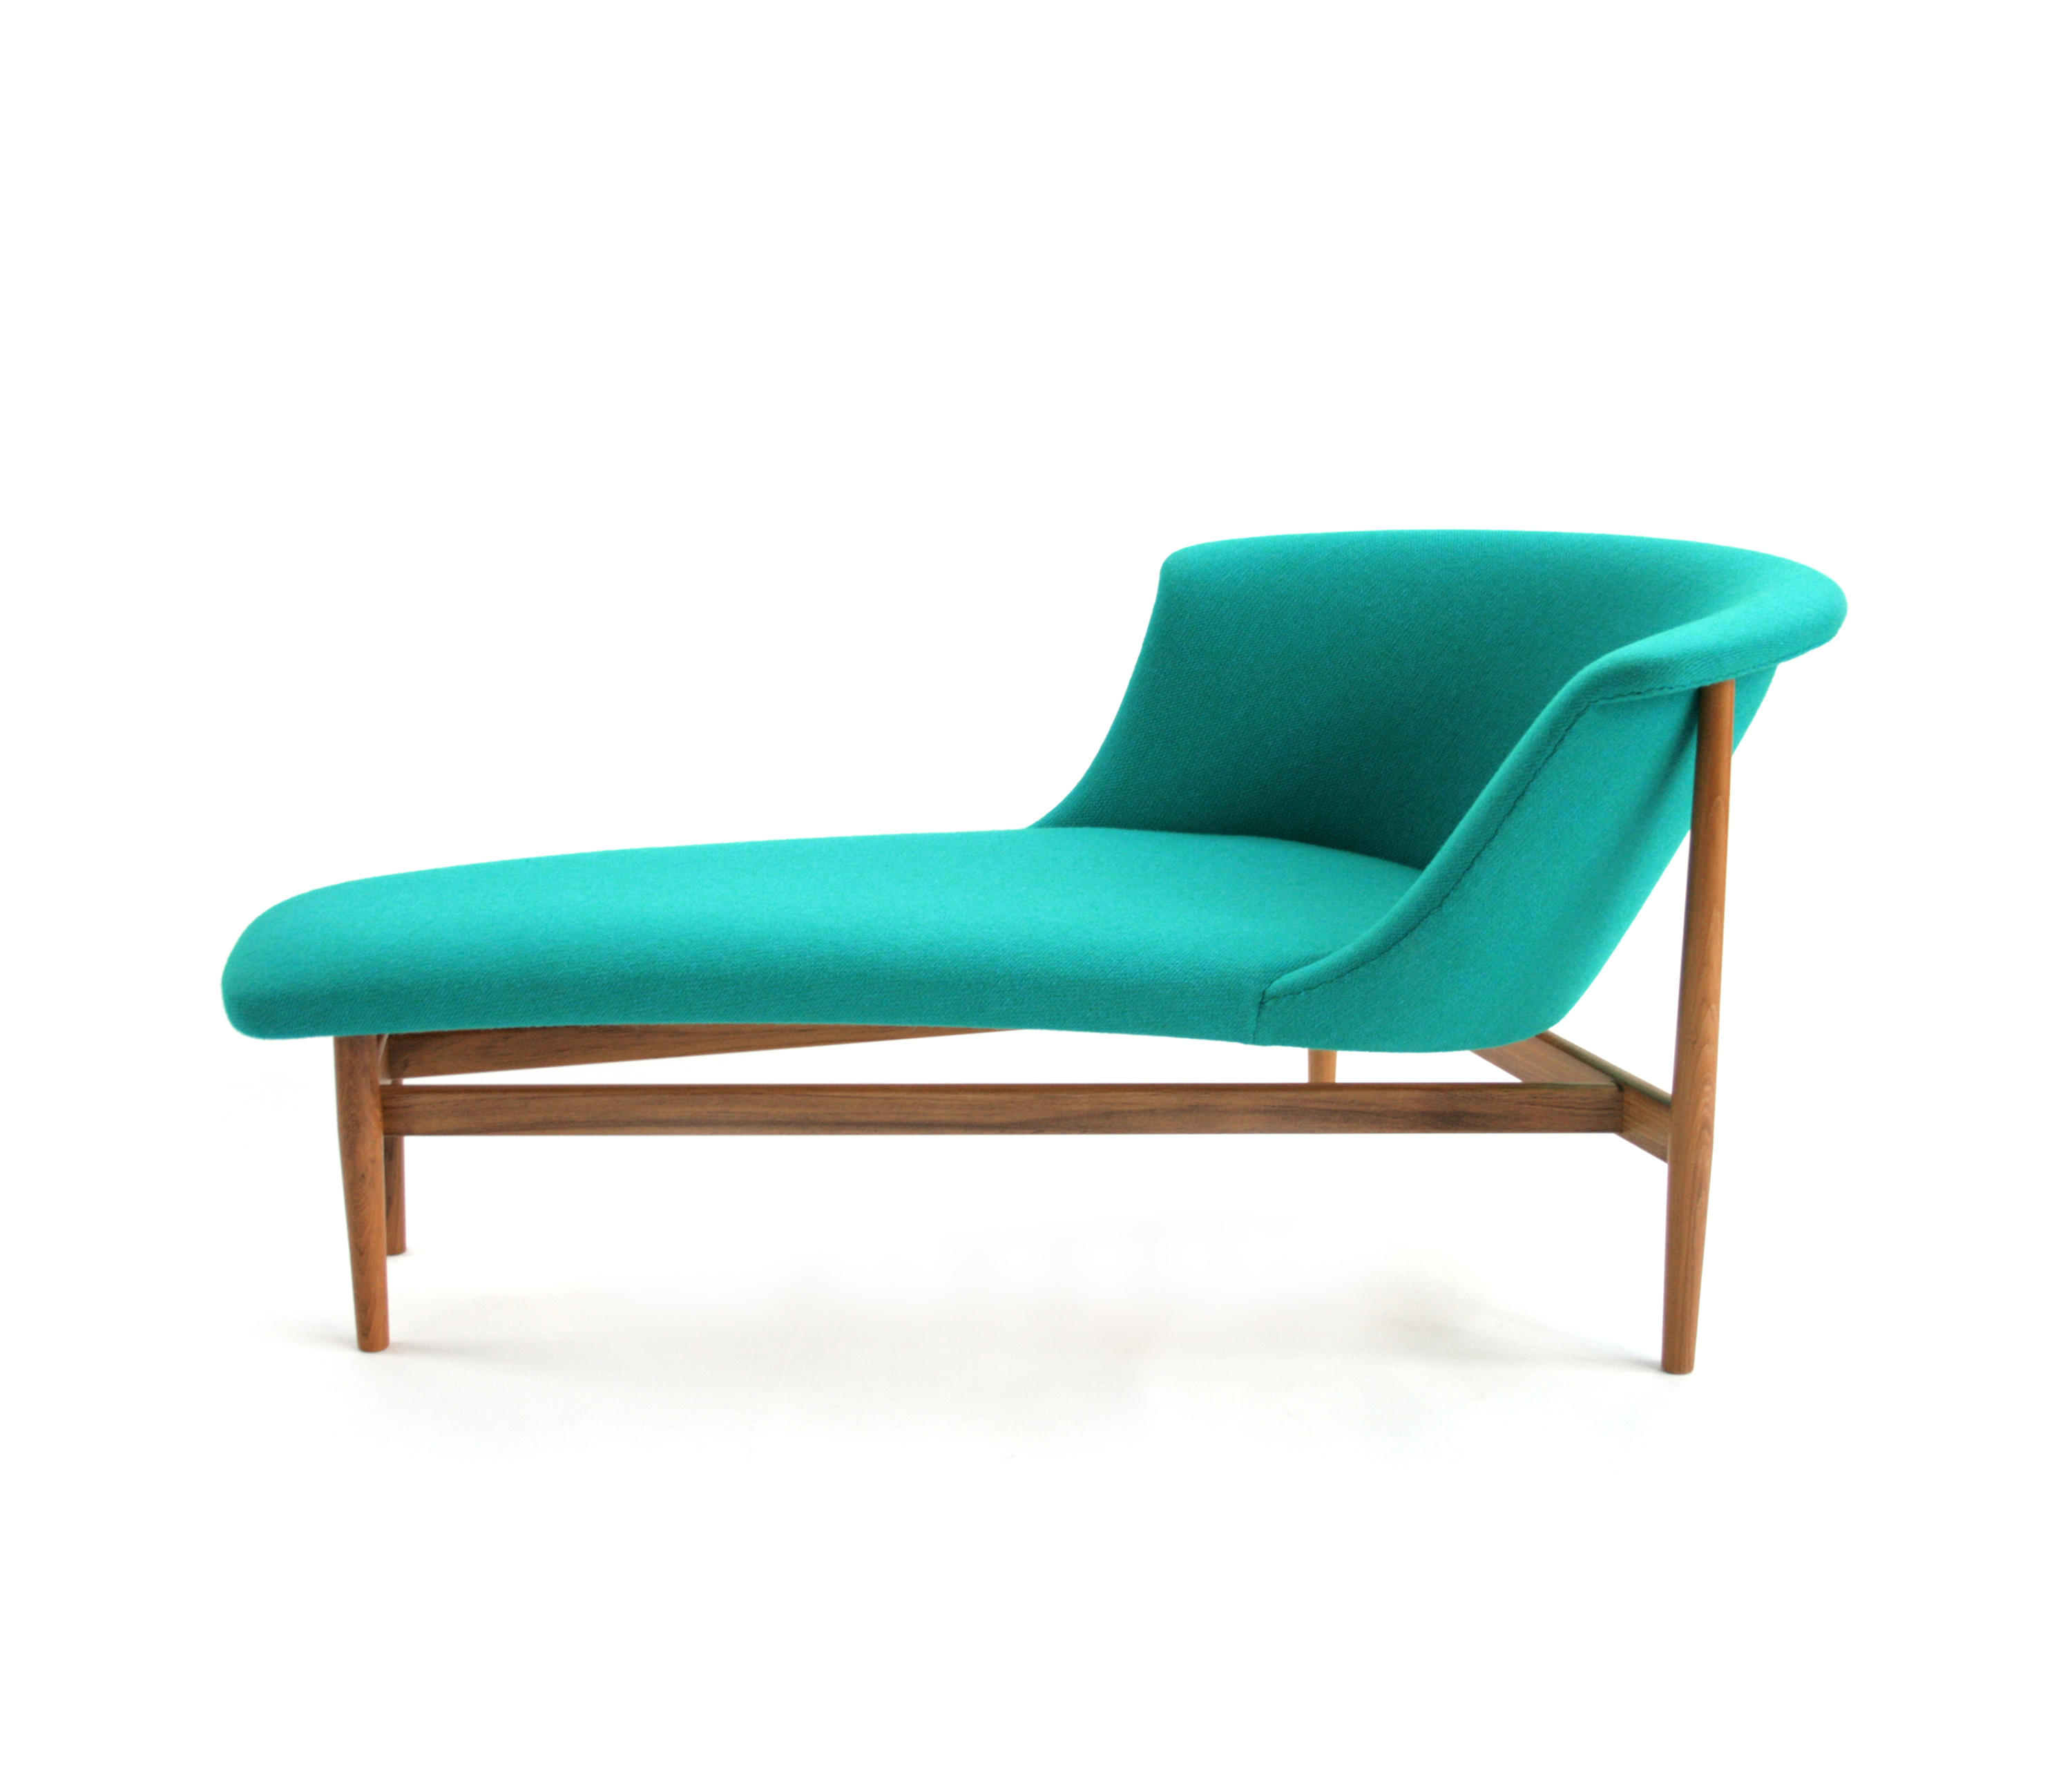 Nd 07 chaise longue chaise longues from kitani japan inc - Chaise longue hesperide ...